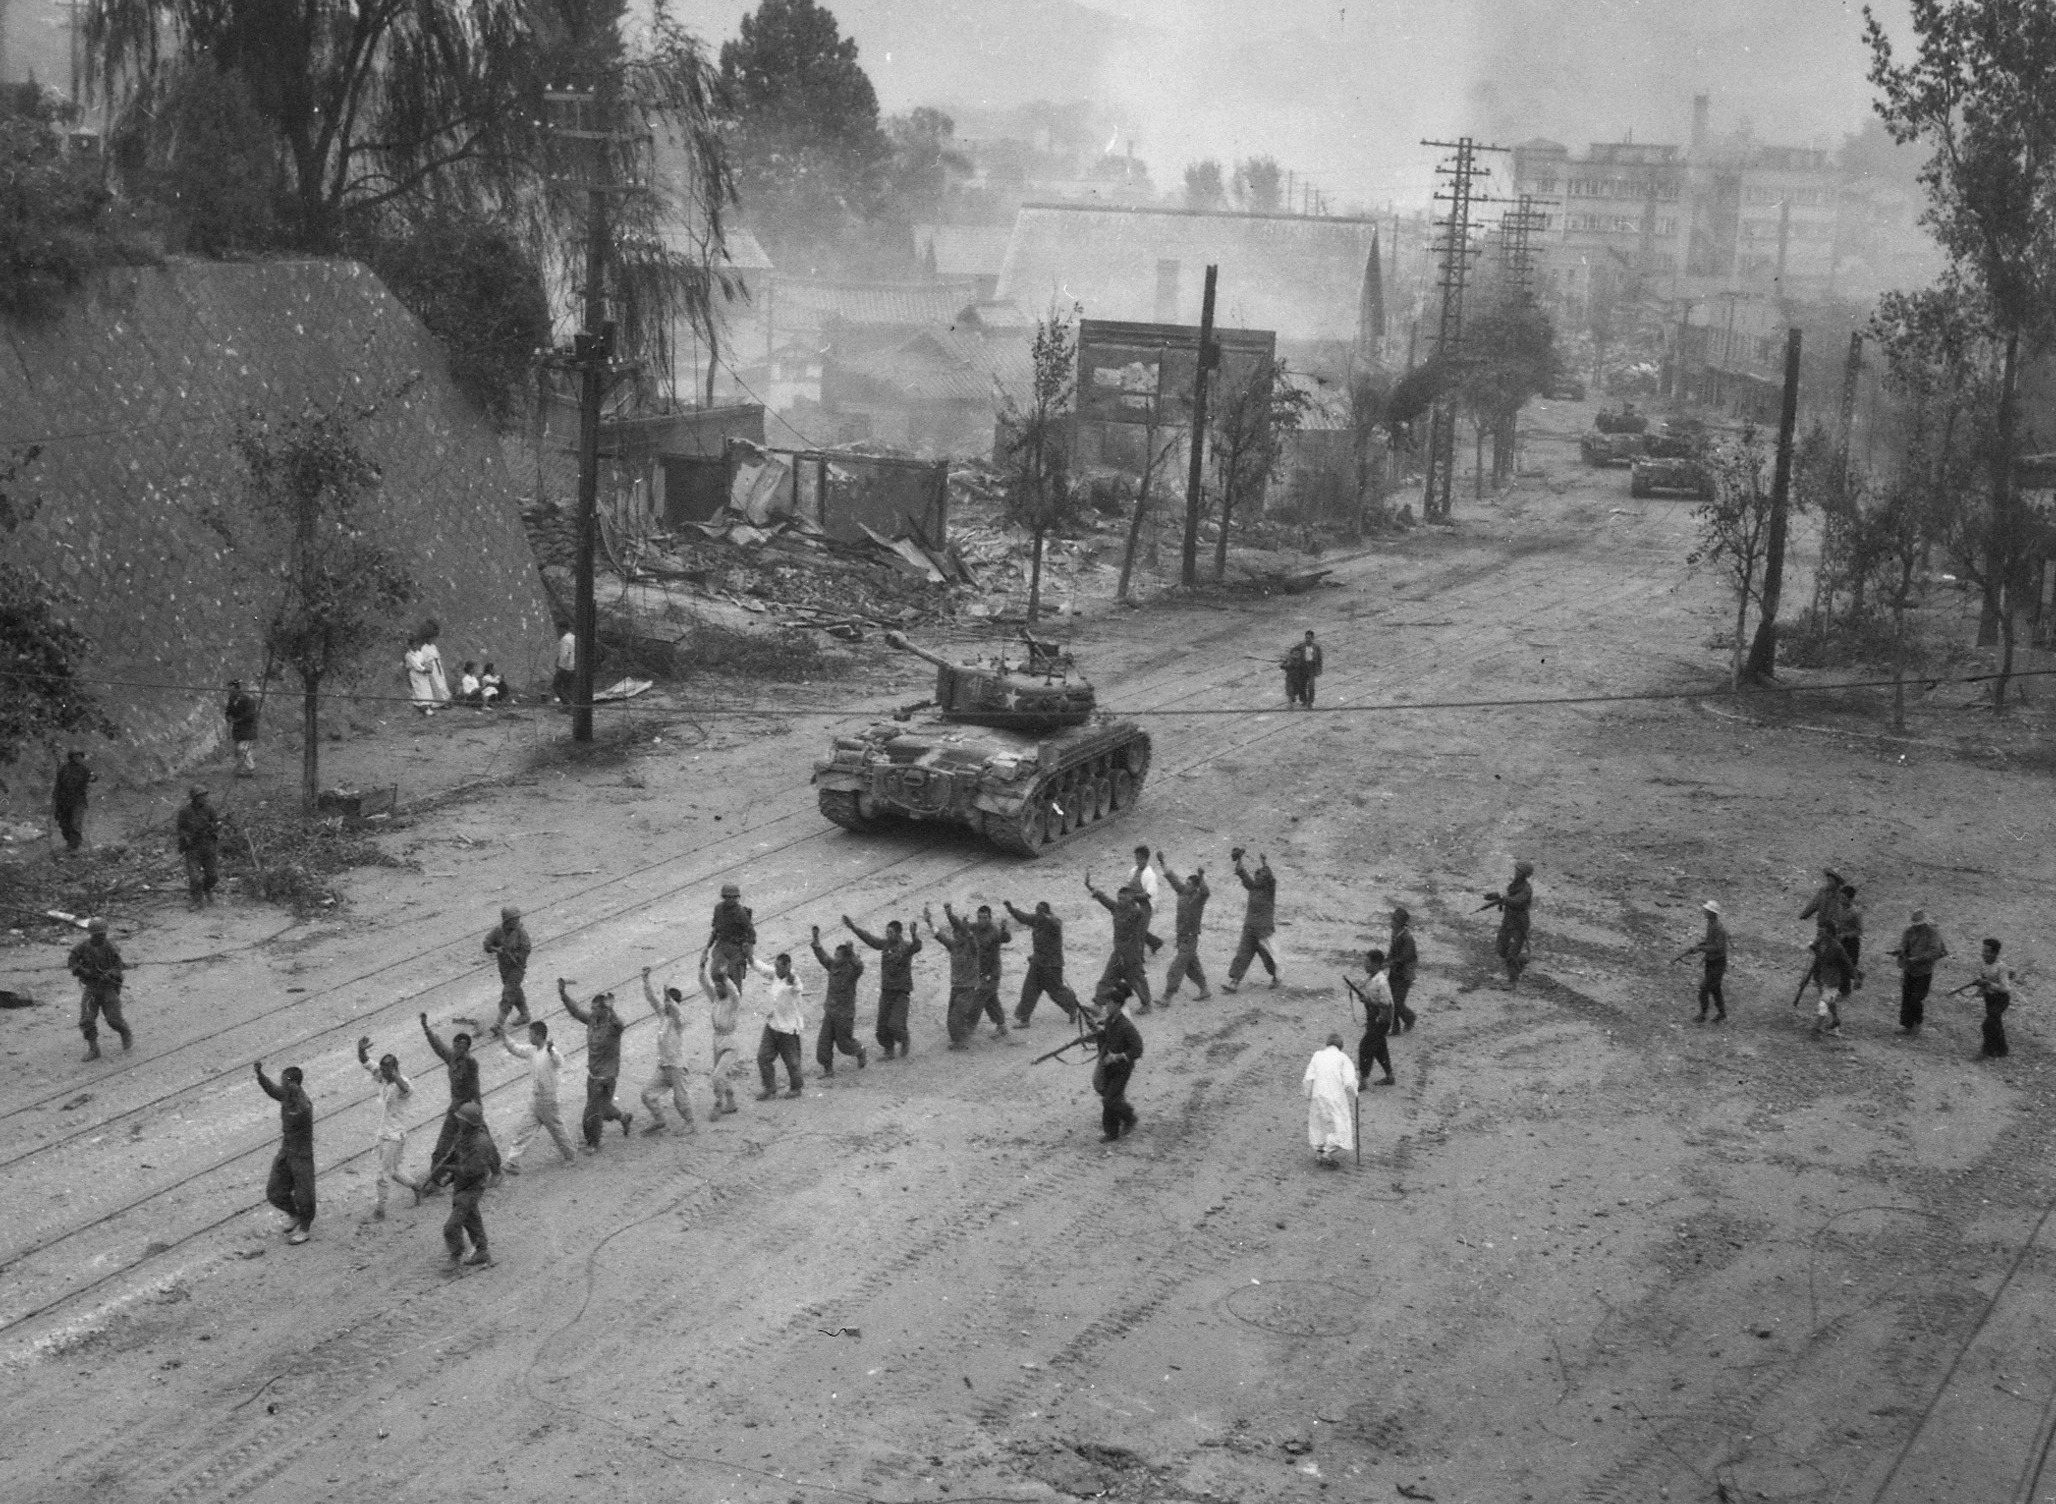 American M26 Pershing tanks in downtown Seoul, South Korea, in the Second Battle of Seoul during the Korean War in September 1950. In the foreground, United Nations troops round up North Korean prisoners-of-war.